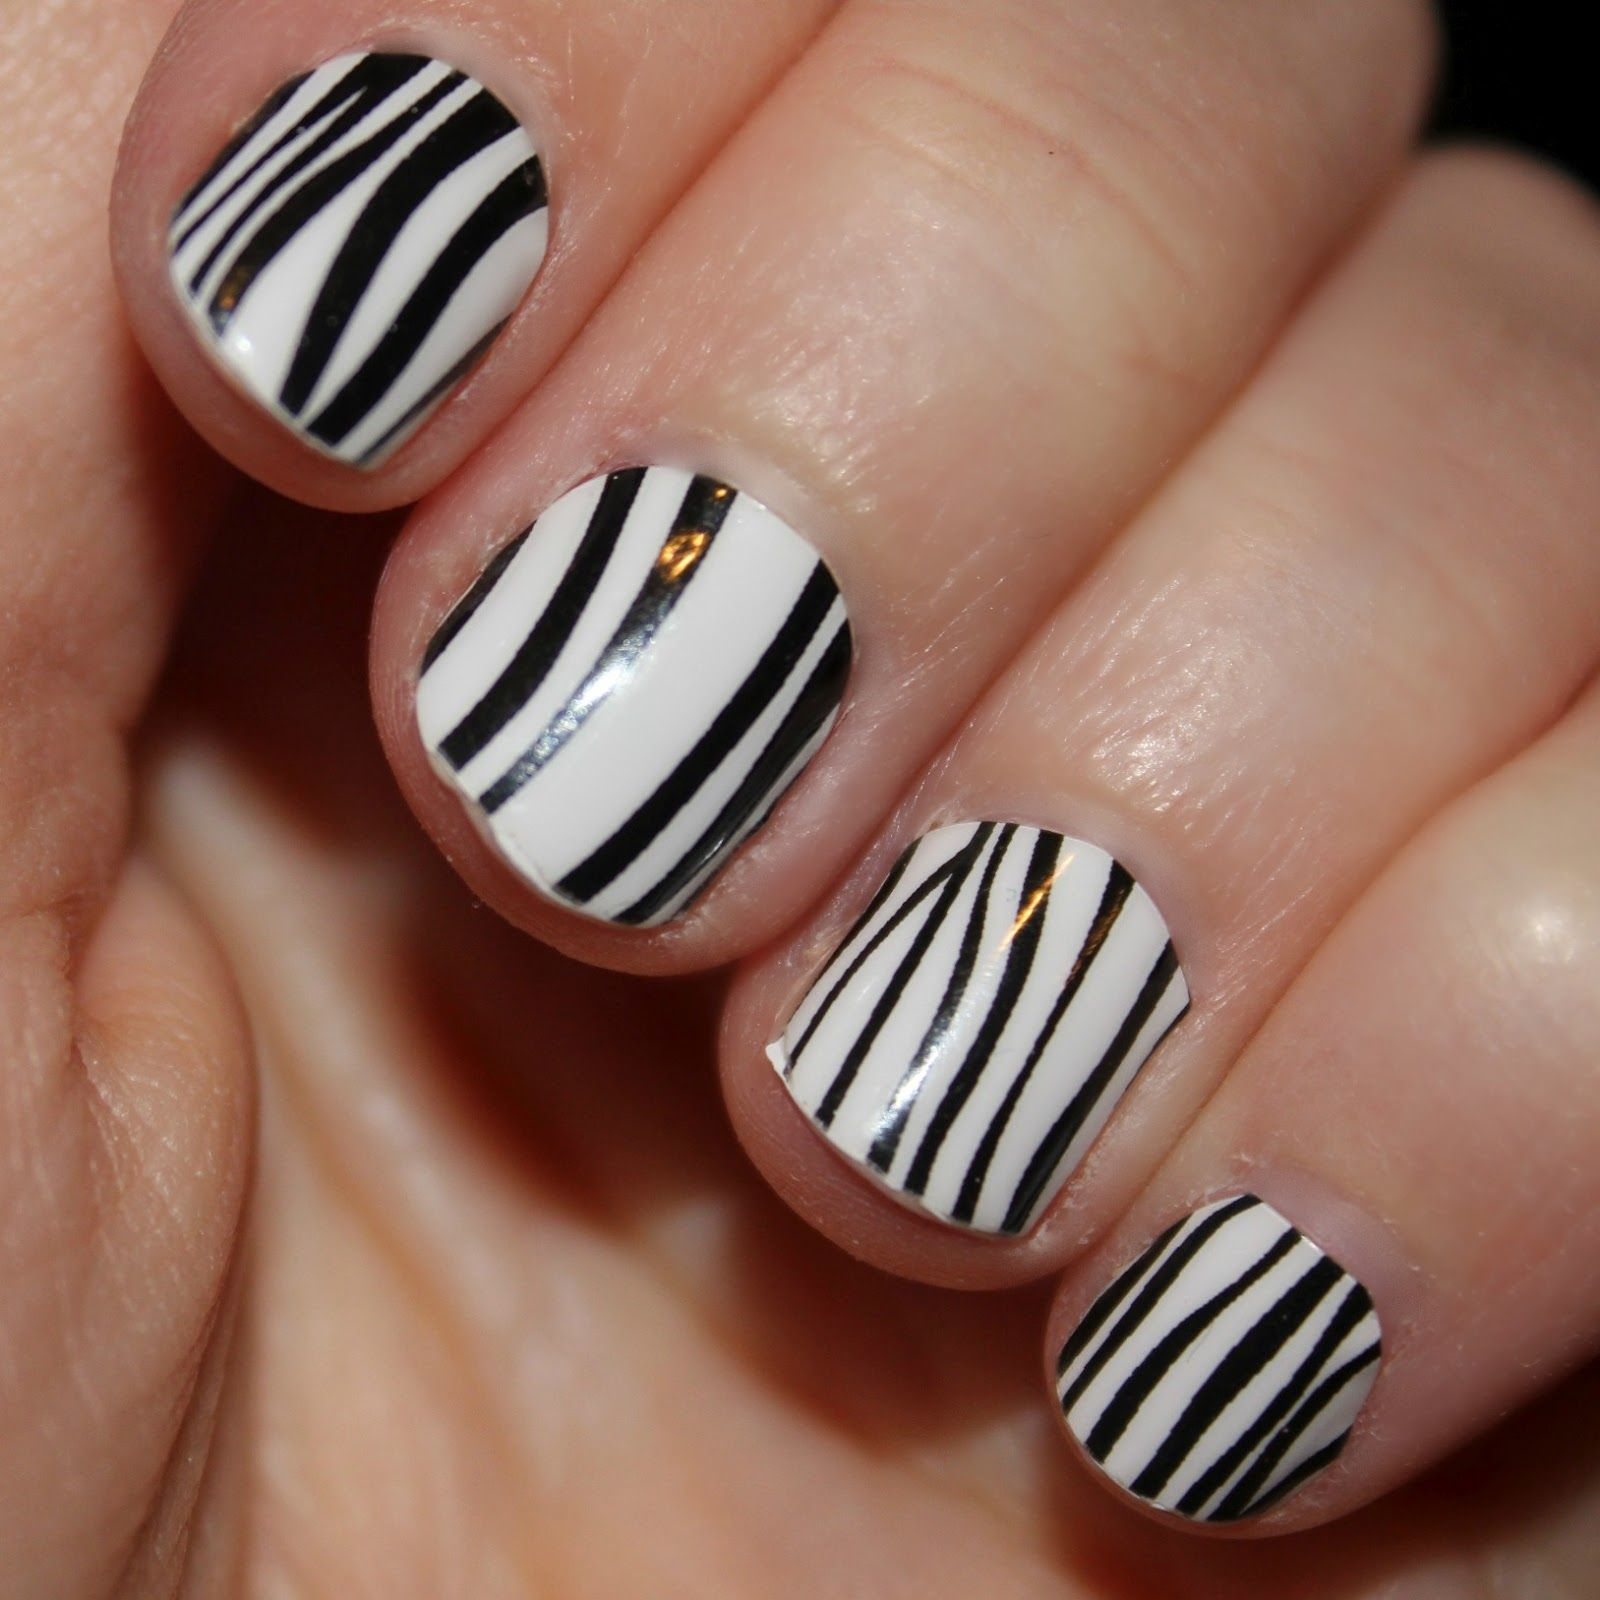 Jamberry Nails {tutorial + giveaway} | Jamberry nails, Jamberry and ...